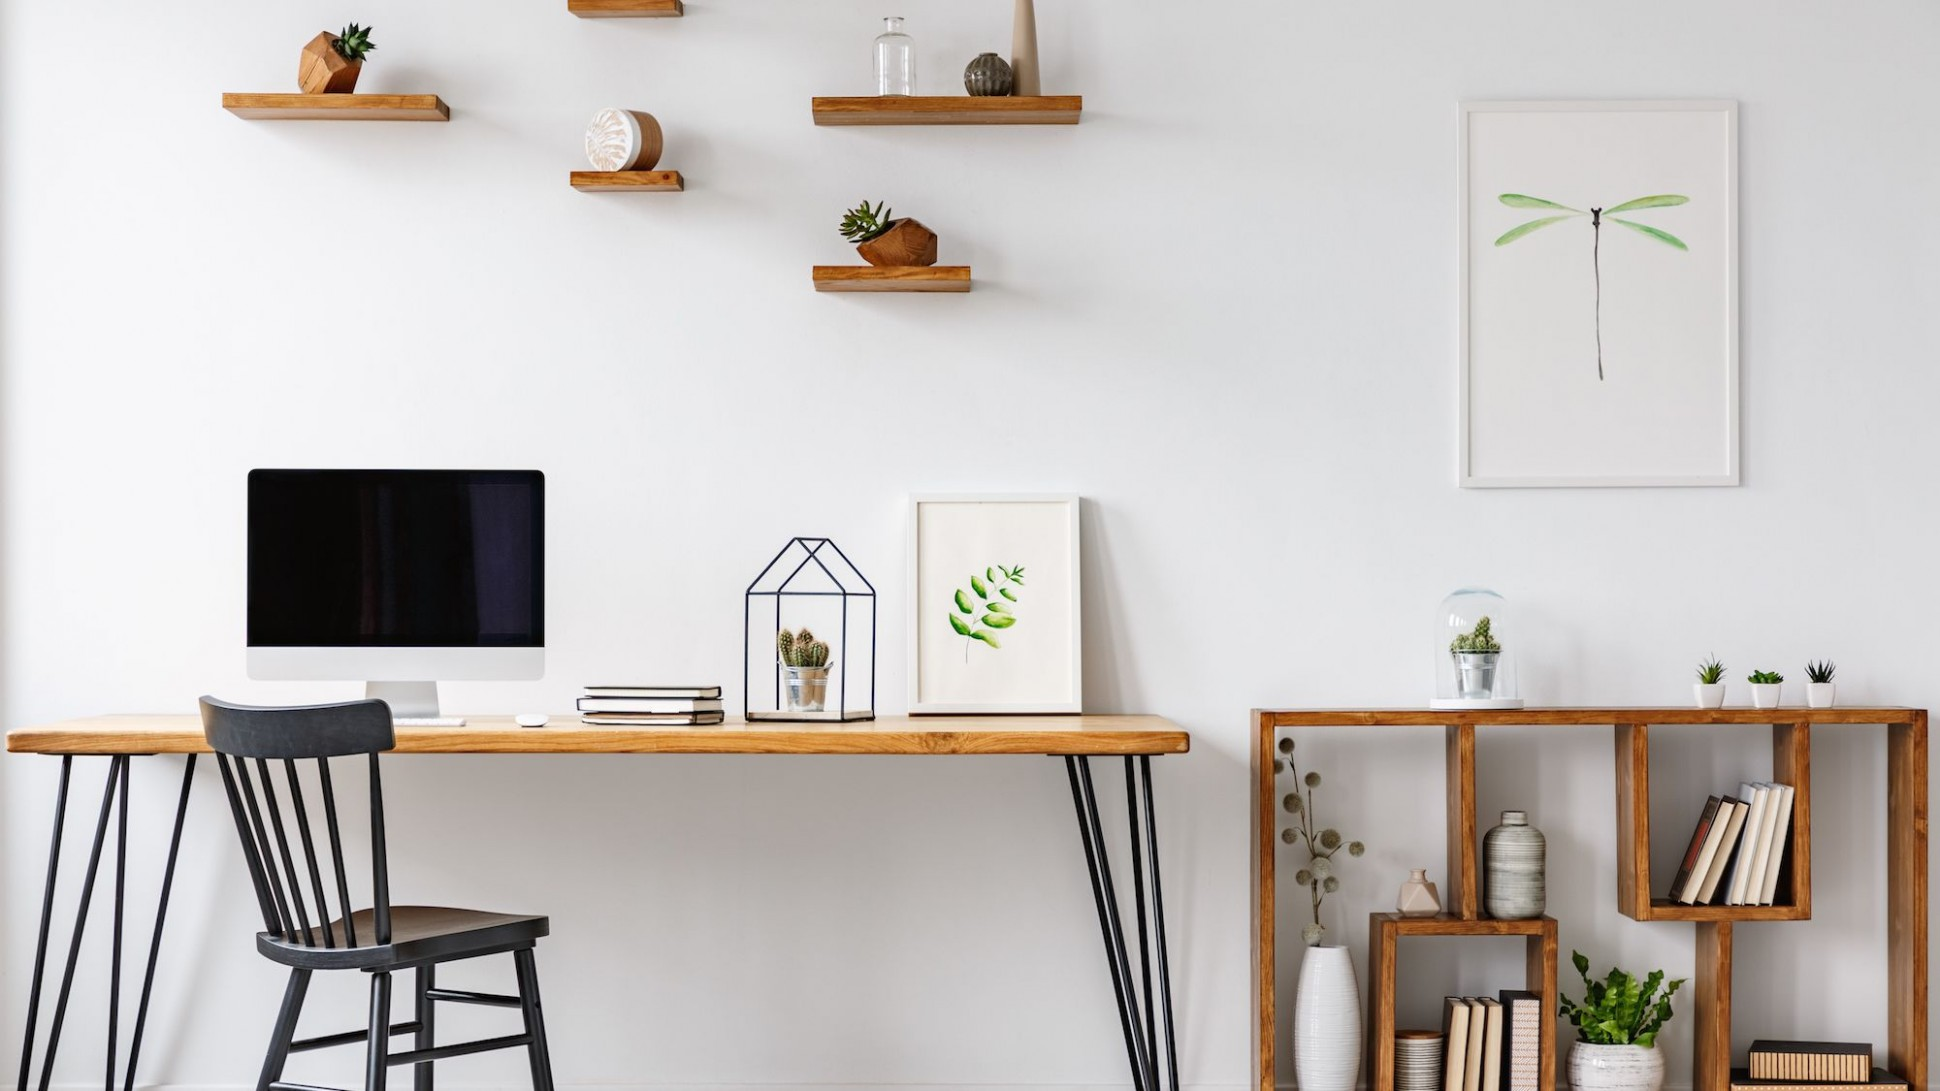 10 Best Office Wall Decor Ideas and Where to Buy  Fairygodboss - Wall Decor Ideas Office